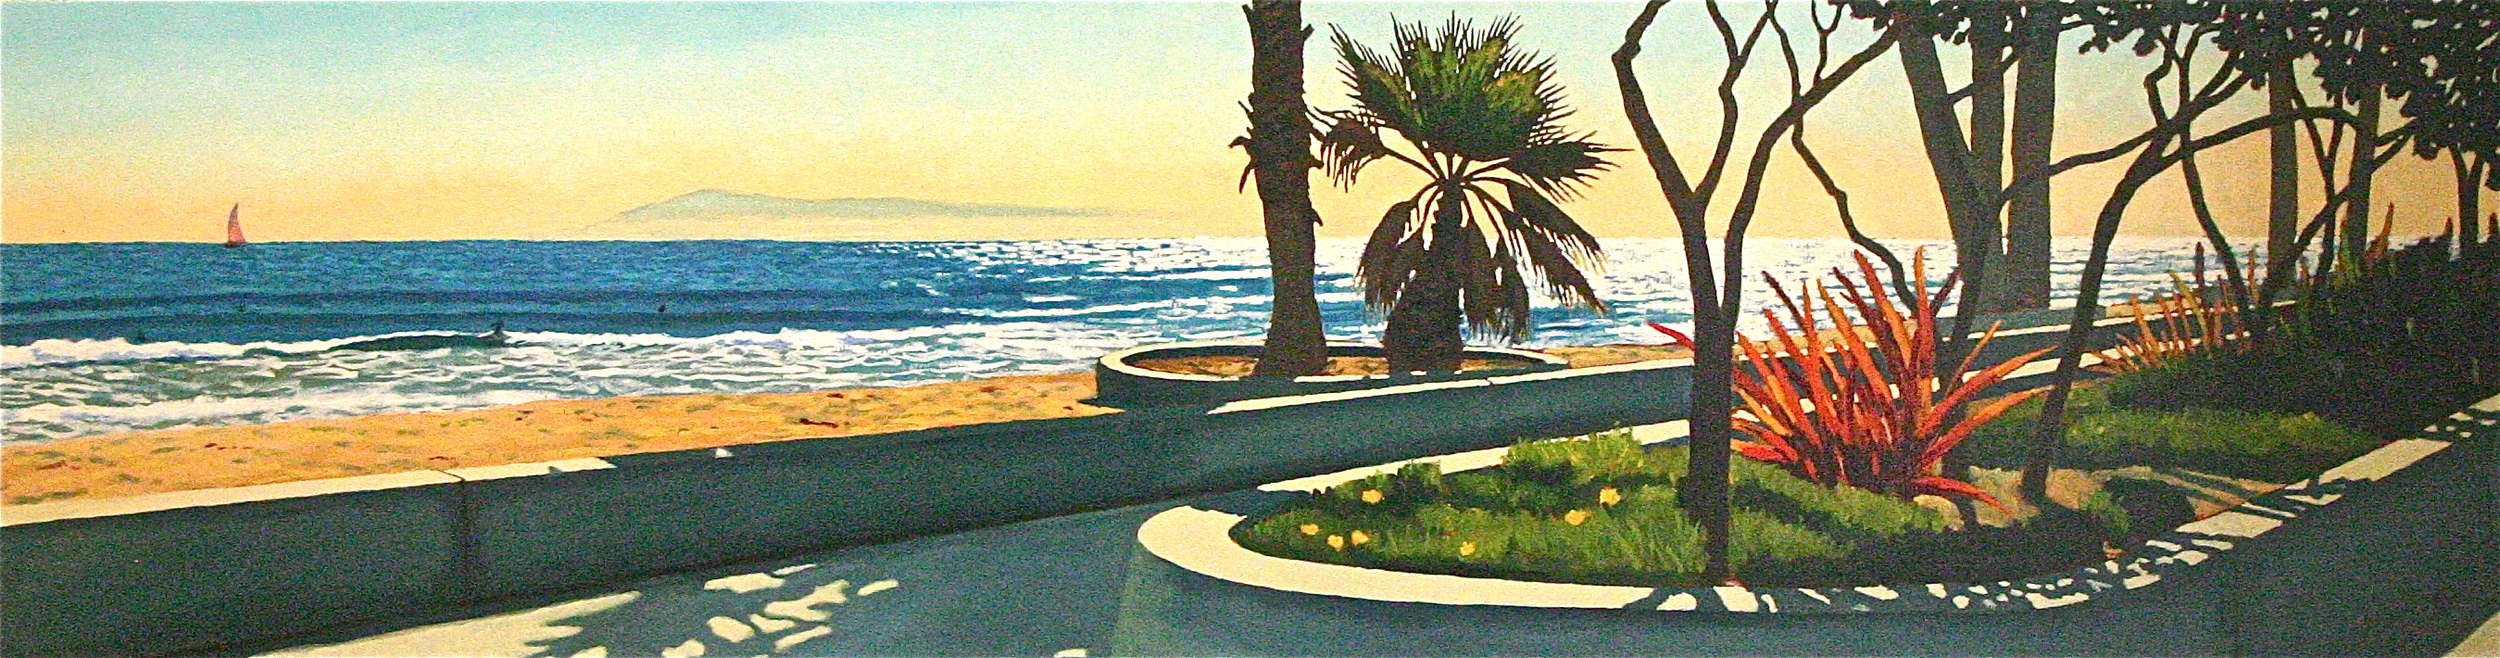 """""""The Little Palm"""" oil on canvas 16 x 60 sold"""